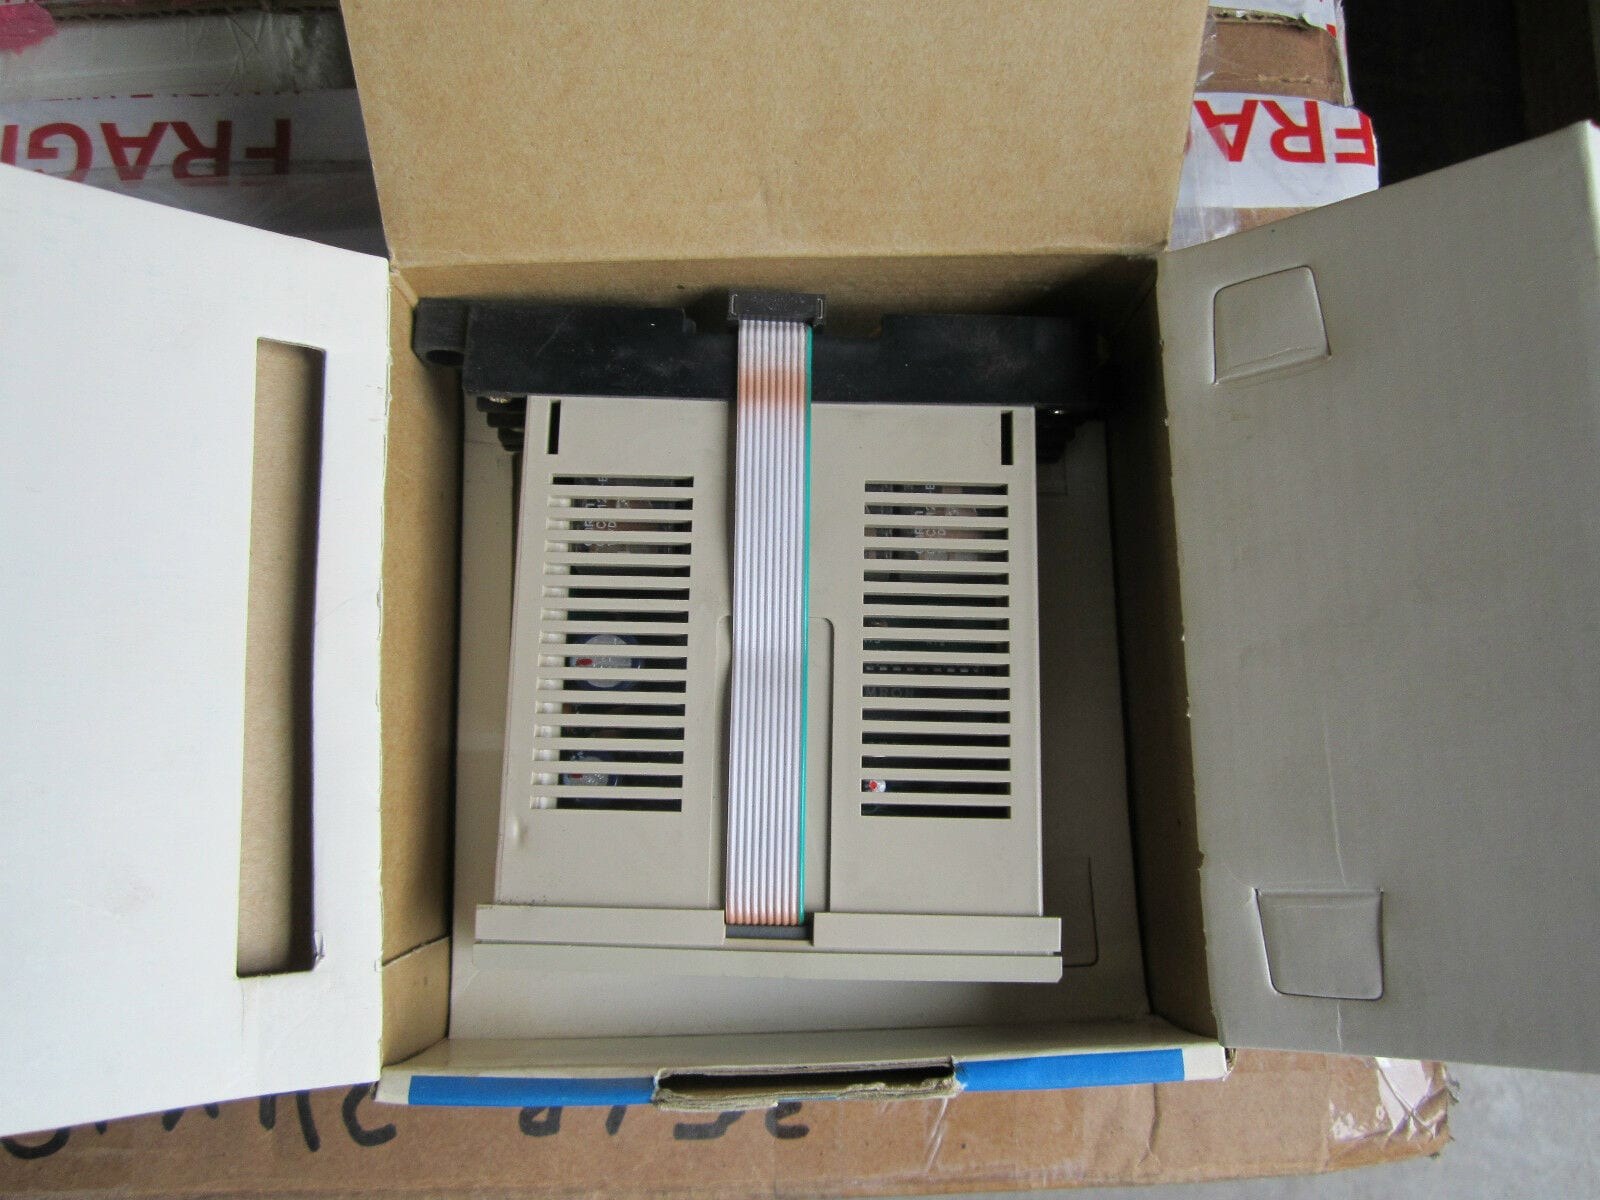 OMRON 3G2A3-OC221 Programmable Controller 250VAC 2A 3G2A3-0C221 *Fully Working*